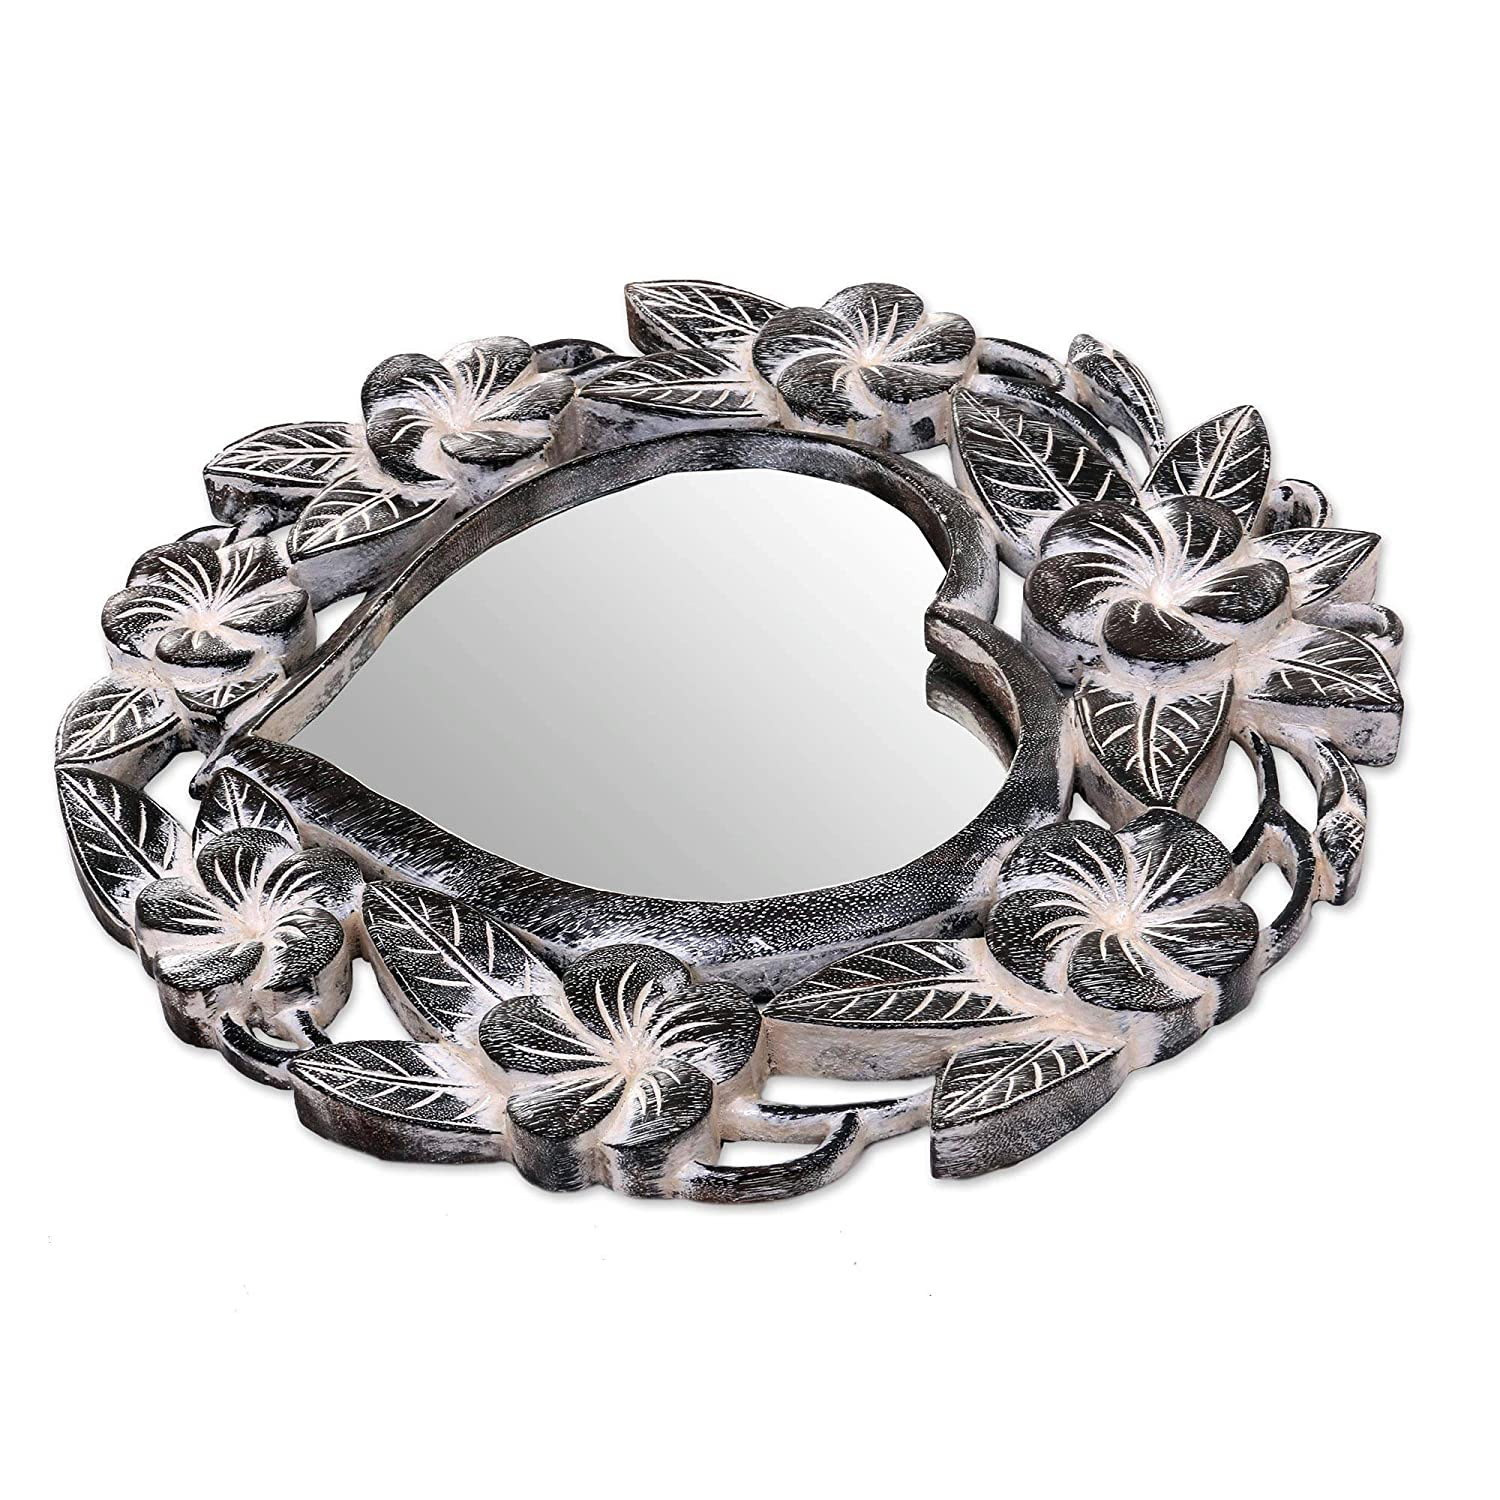 NOVICA 262493 Black Frangipani Heart Wall Mirror